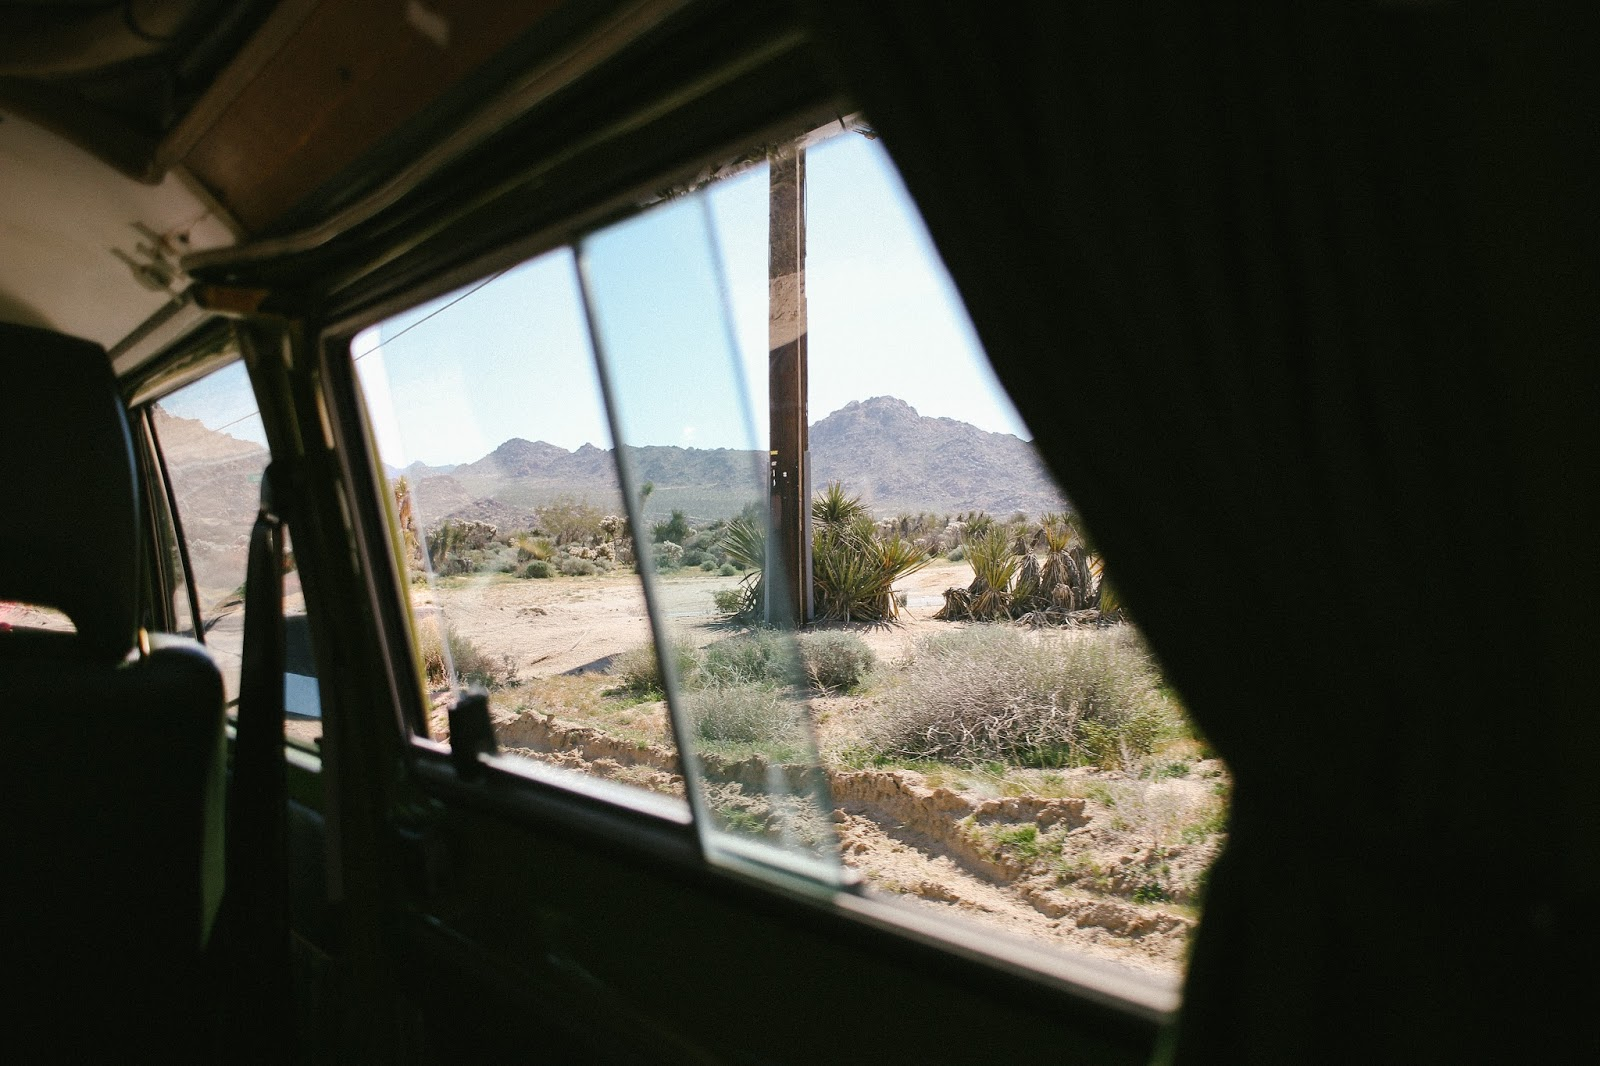 car window at joshua tree